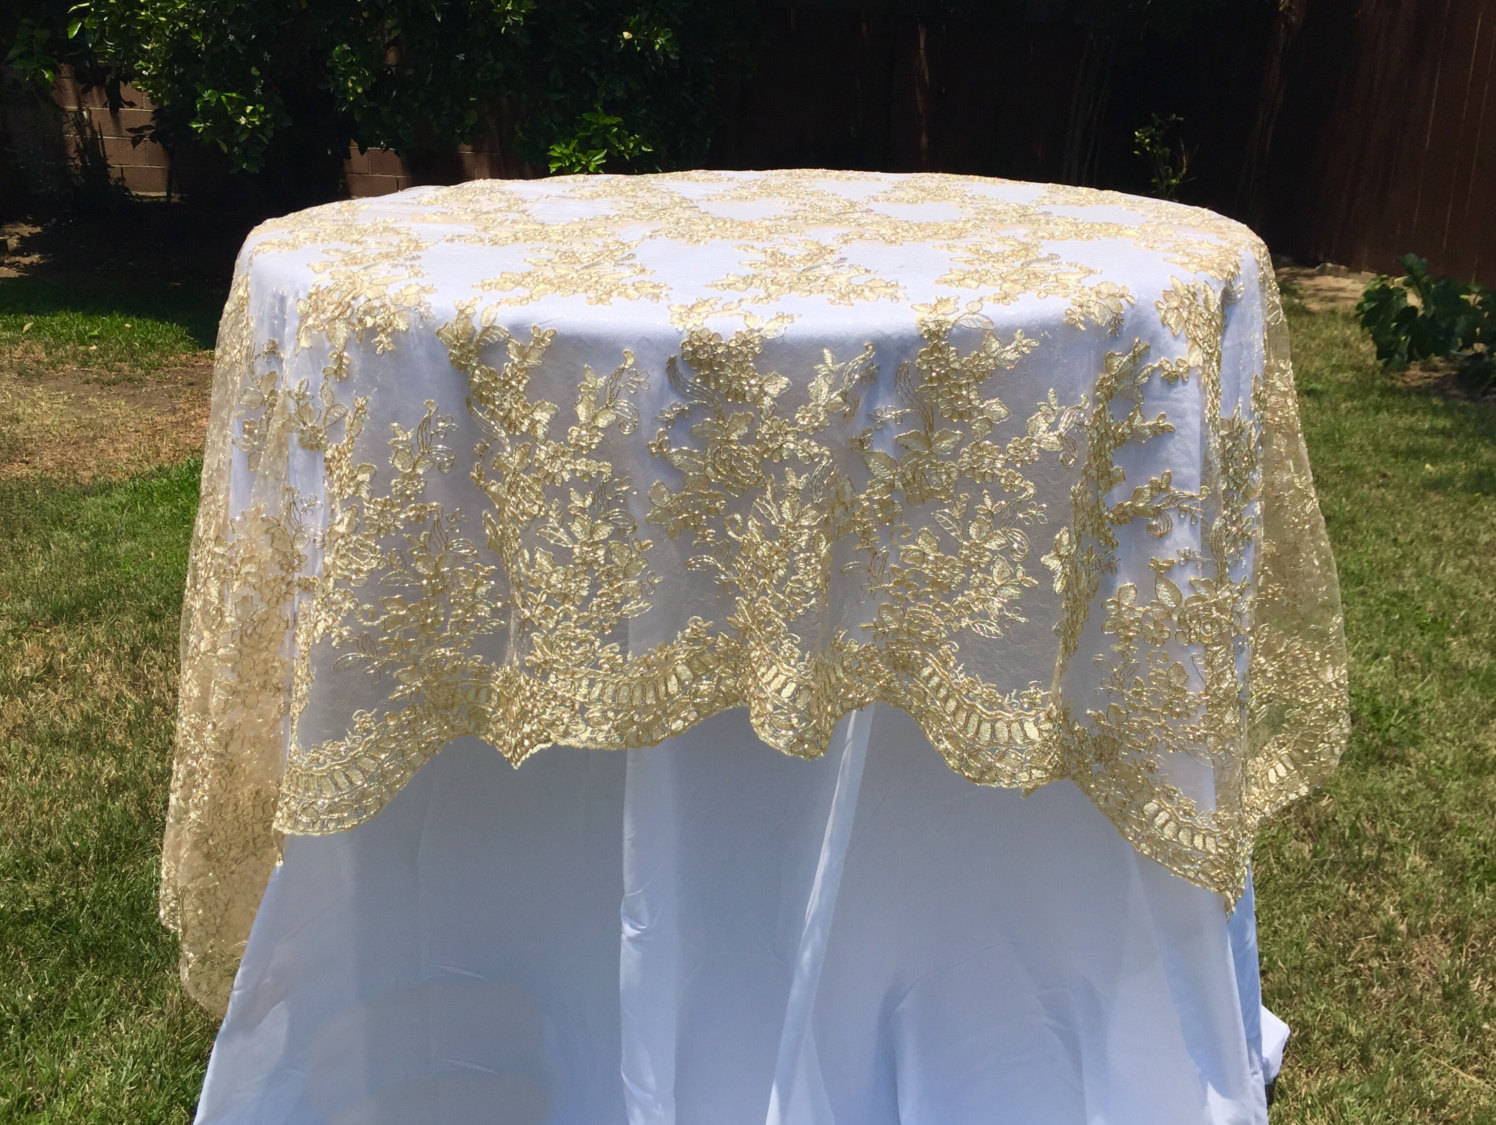 Lace Tablecloths For Weddings Cheap